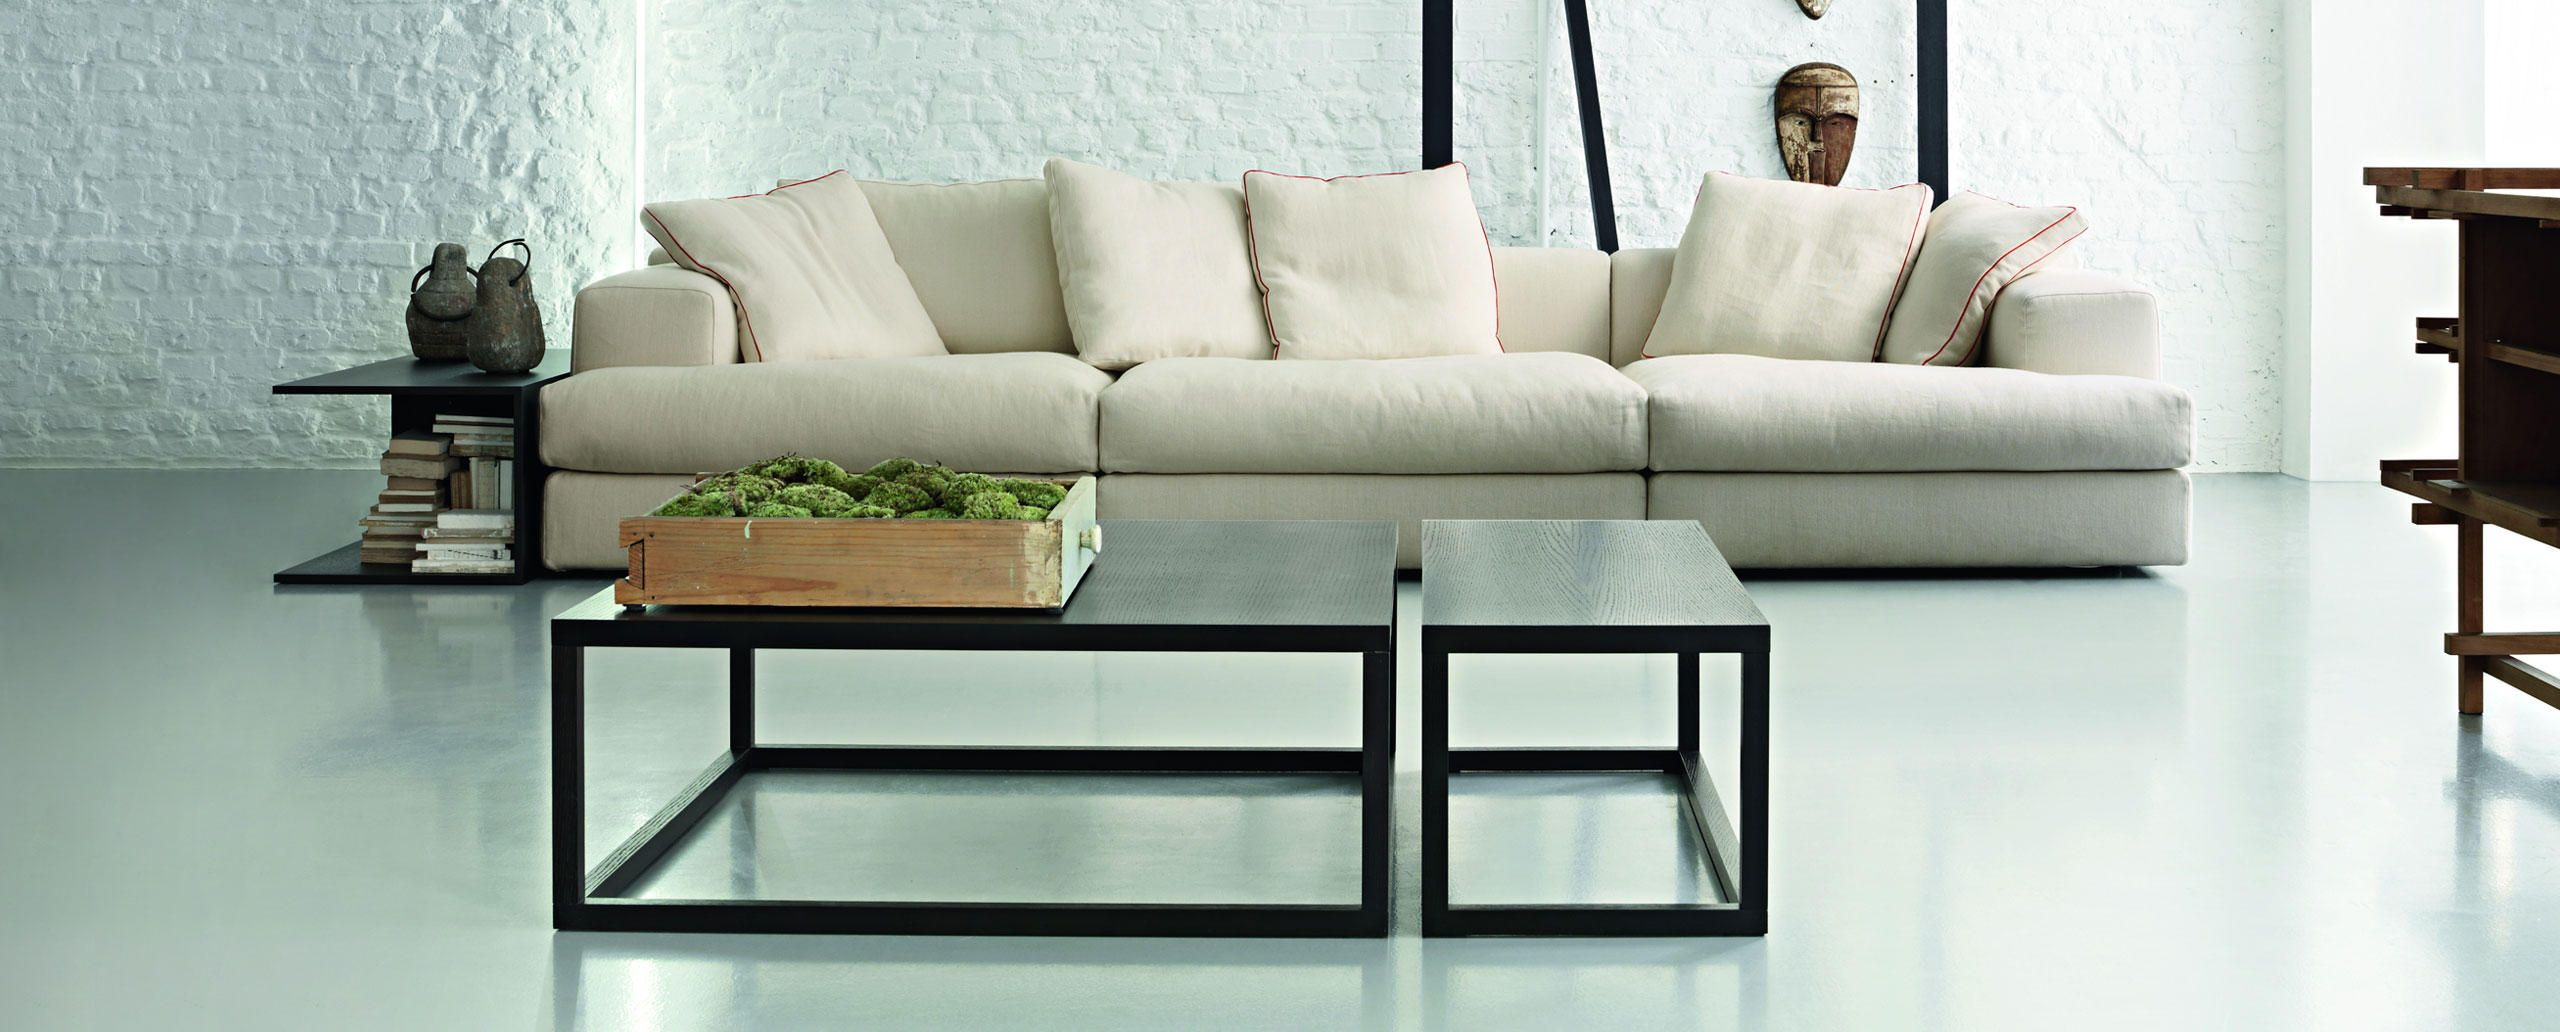 79 best seat sofa A images on Pinterest